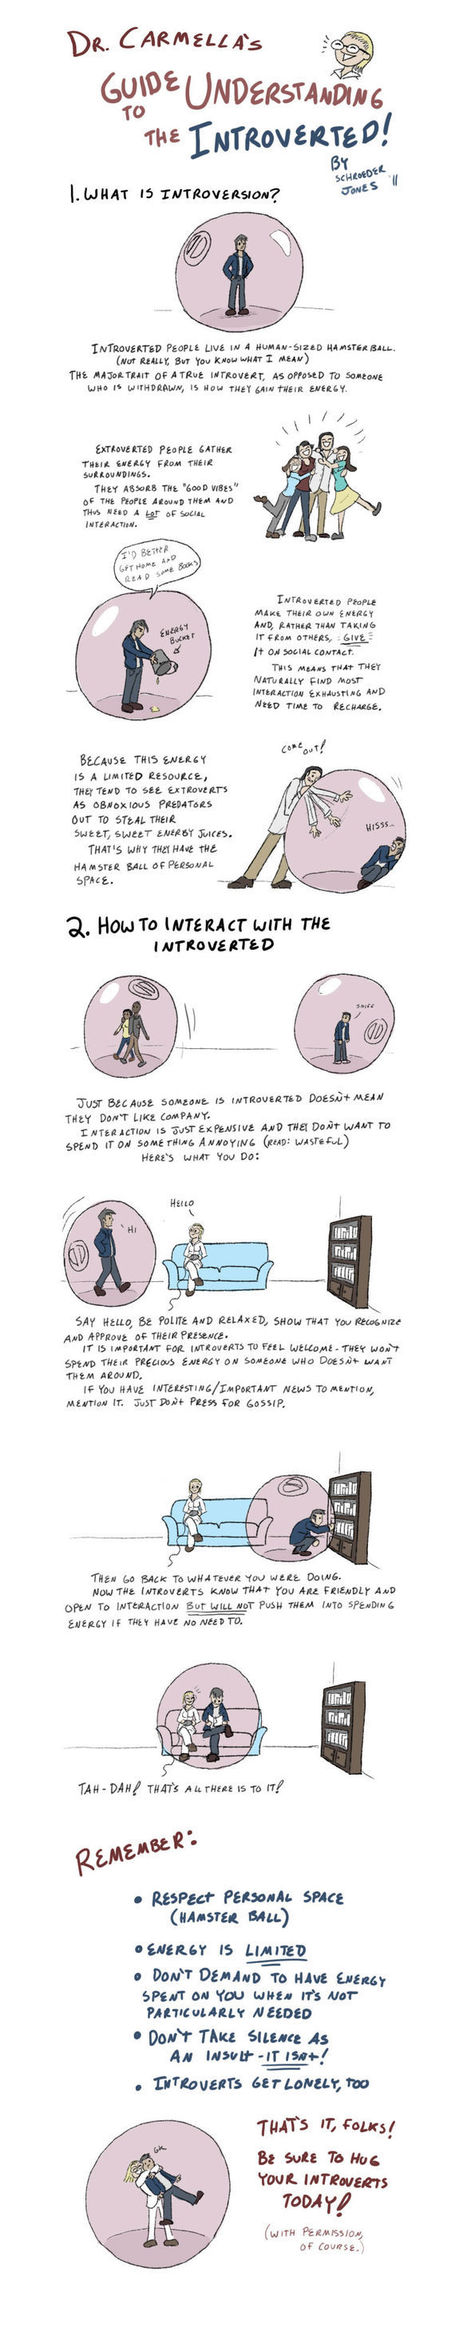 Your Guide To Interacting With An Introvert | Kinsanity | Scoop.it